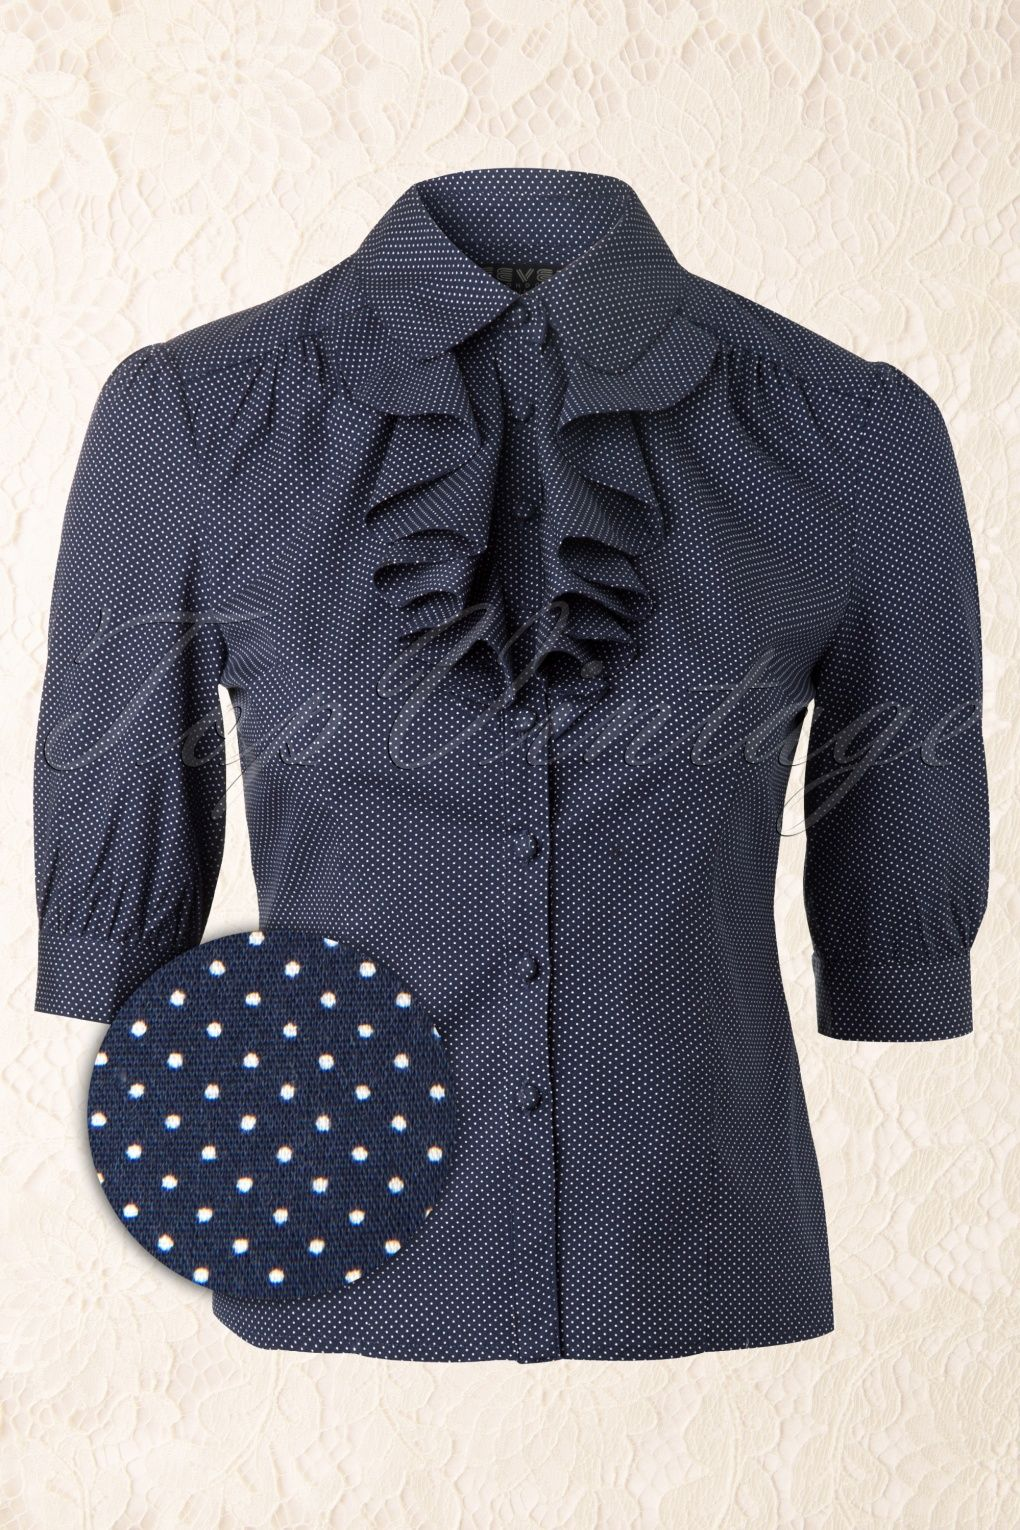 Fever - 50s Audrey Pindot Blouse in Navy